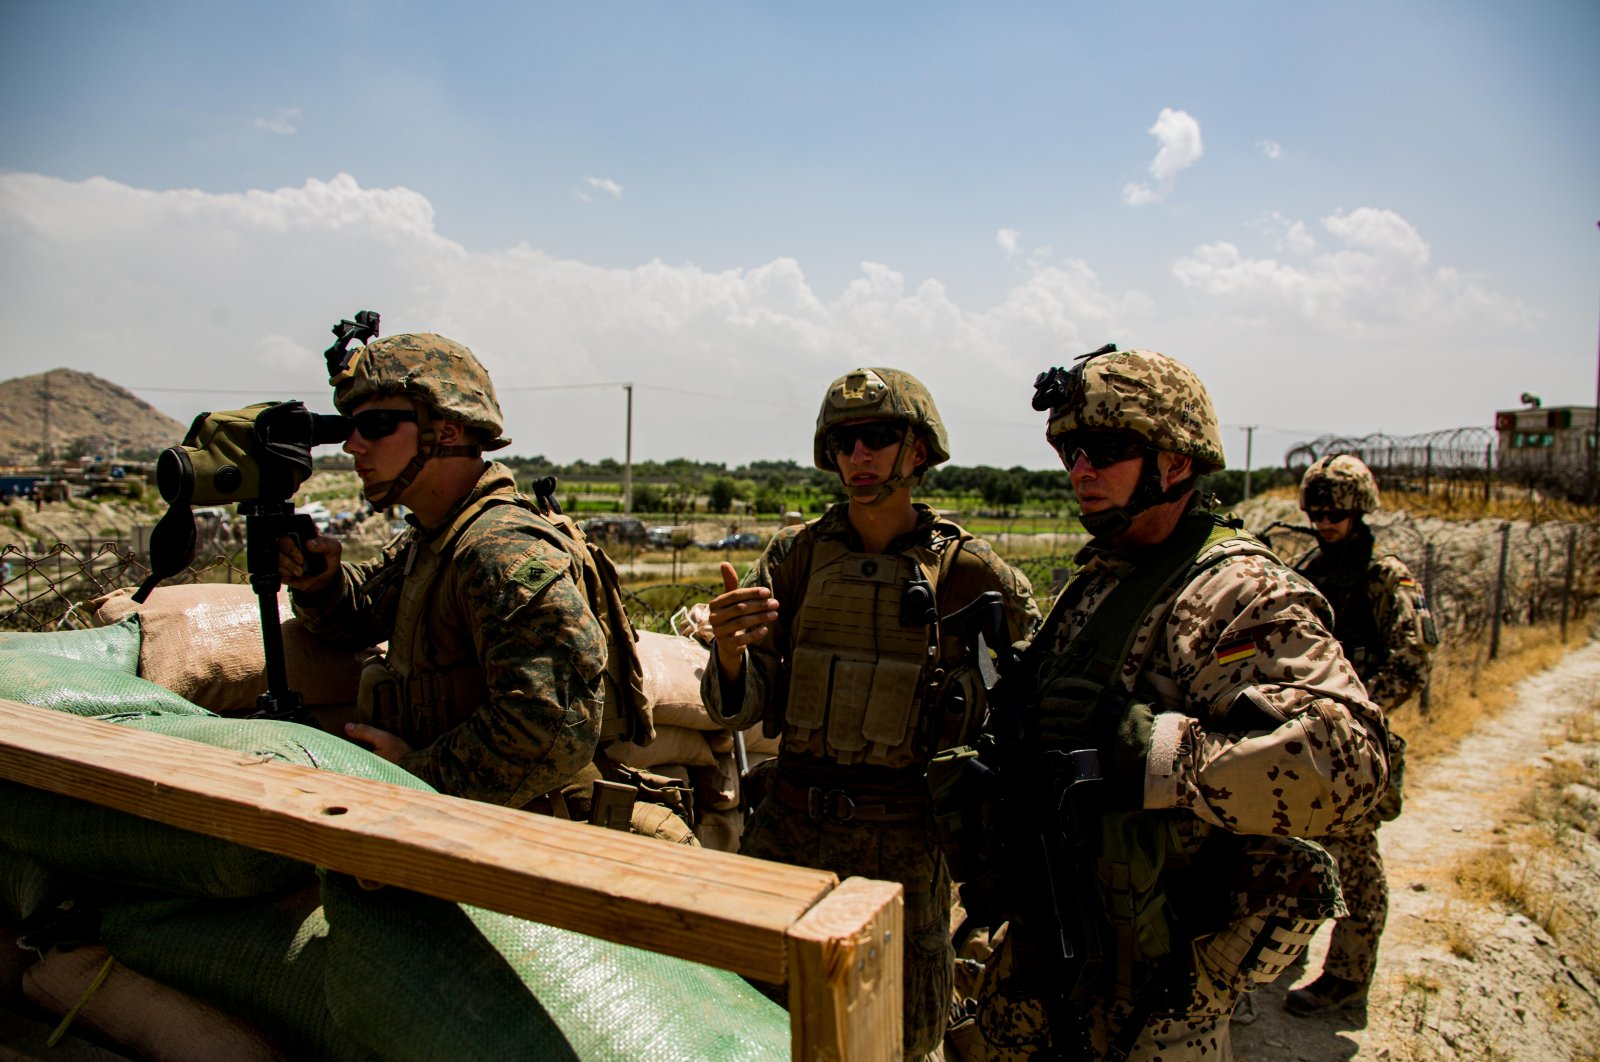 U.S. Marines and German service members watch an entry gate during an evacuation at Hamid Karzai International Airport, Kabul, Afghanistan, Aug. 28, 2021. (Reuters Photo)